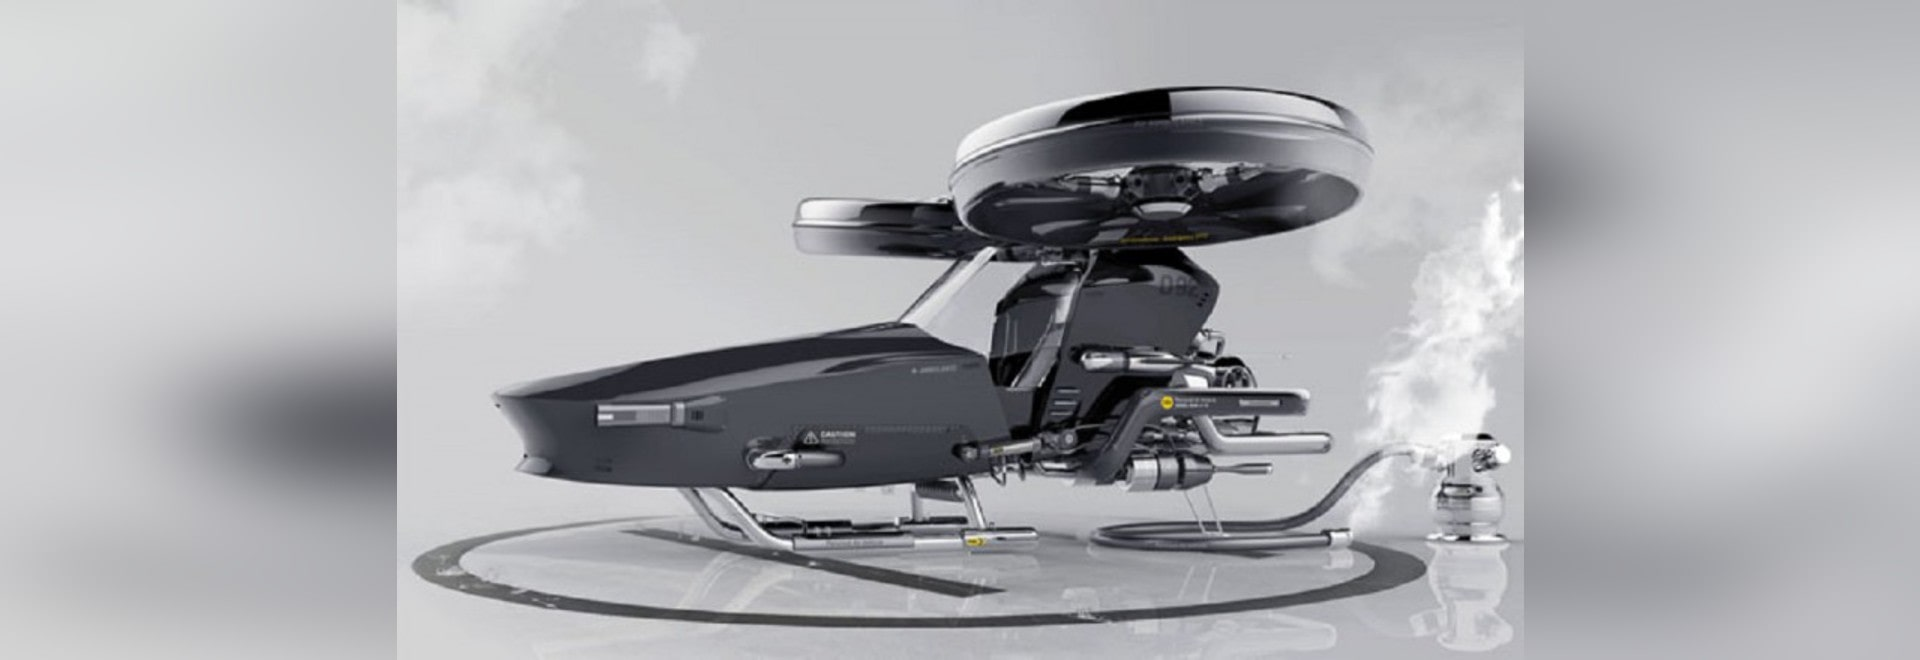 THE HELIVEHICLE EMERGENCY HELICOPTER : EMERGENCY VEHICLE OF THE FUTURE!